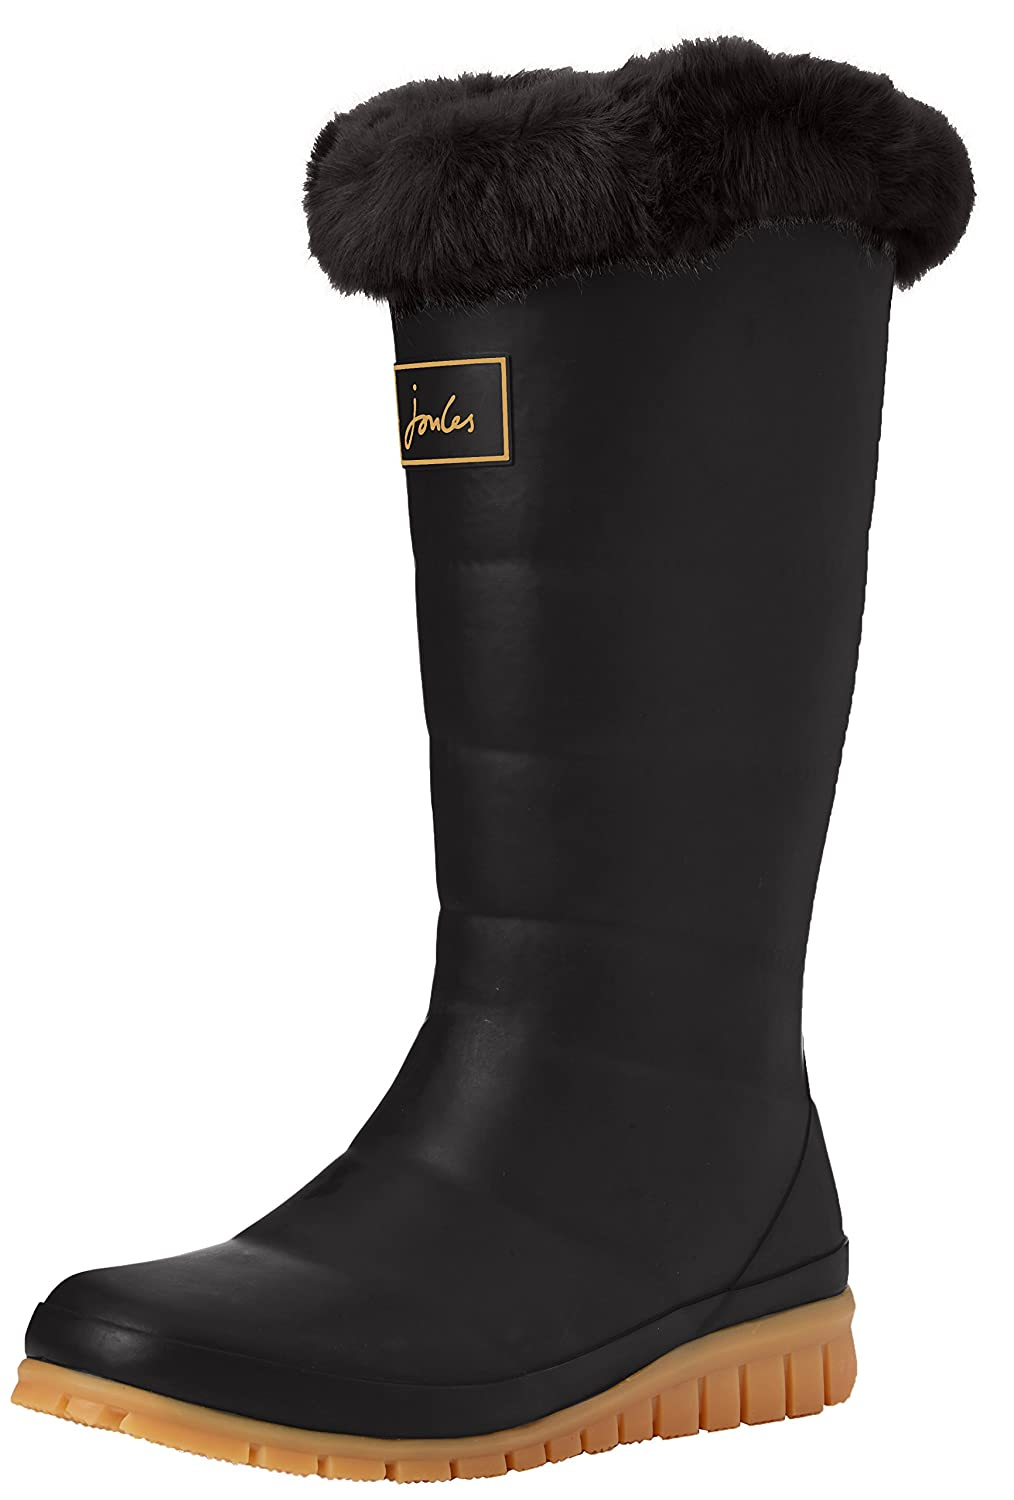 Joules Women's Downton Rain Boot B06XGMM58Y 10 B(M) US|Black